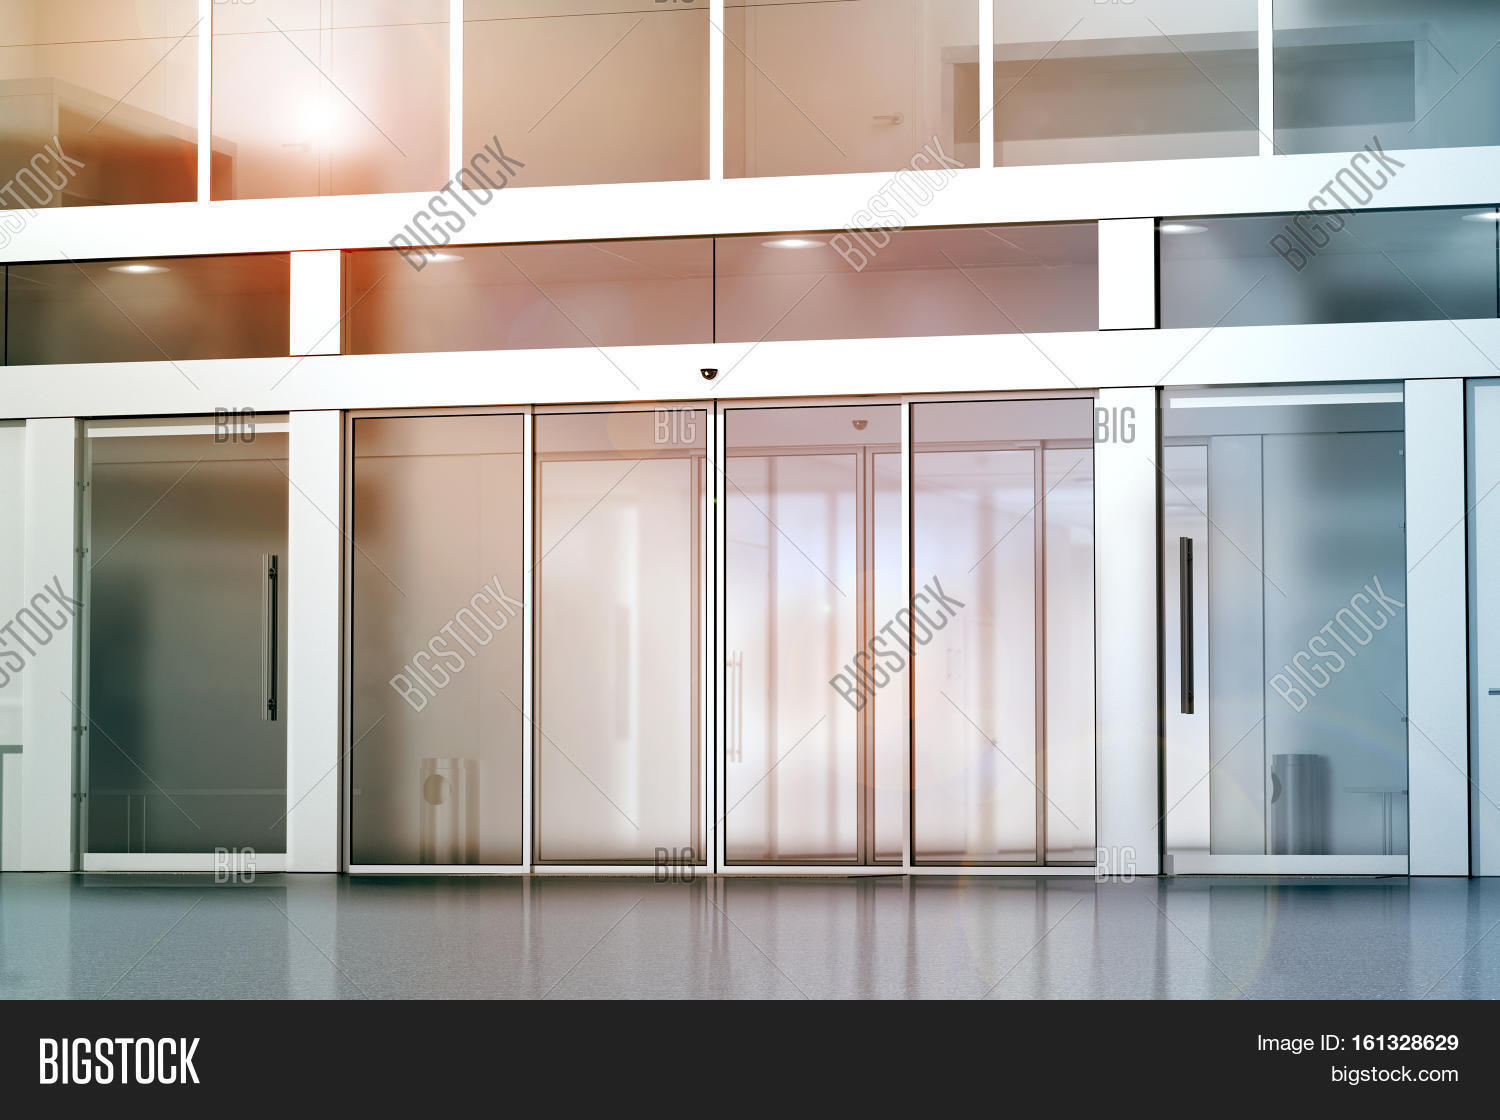 Exterior glass office door - Blank Sliding Glass Doors Entrance Mockup 3d Rendering Commercial Building Entry Mock Up Office